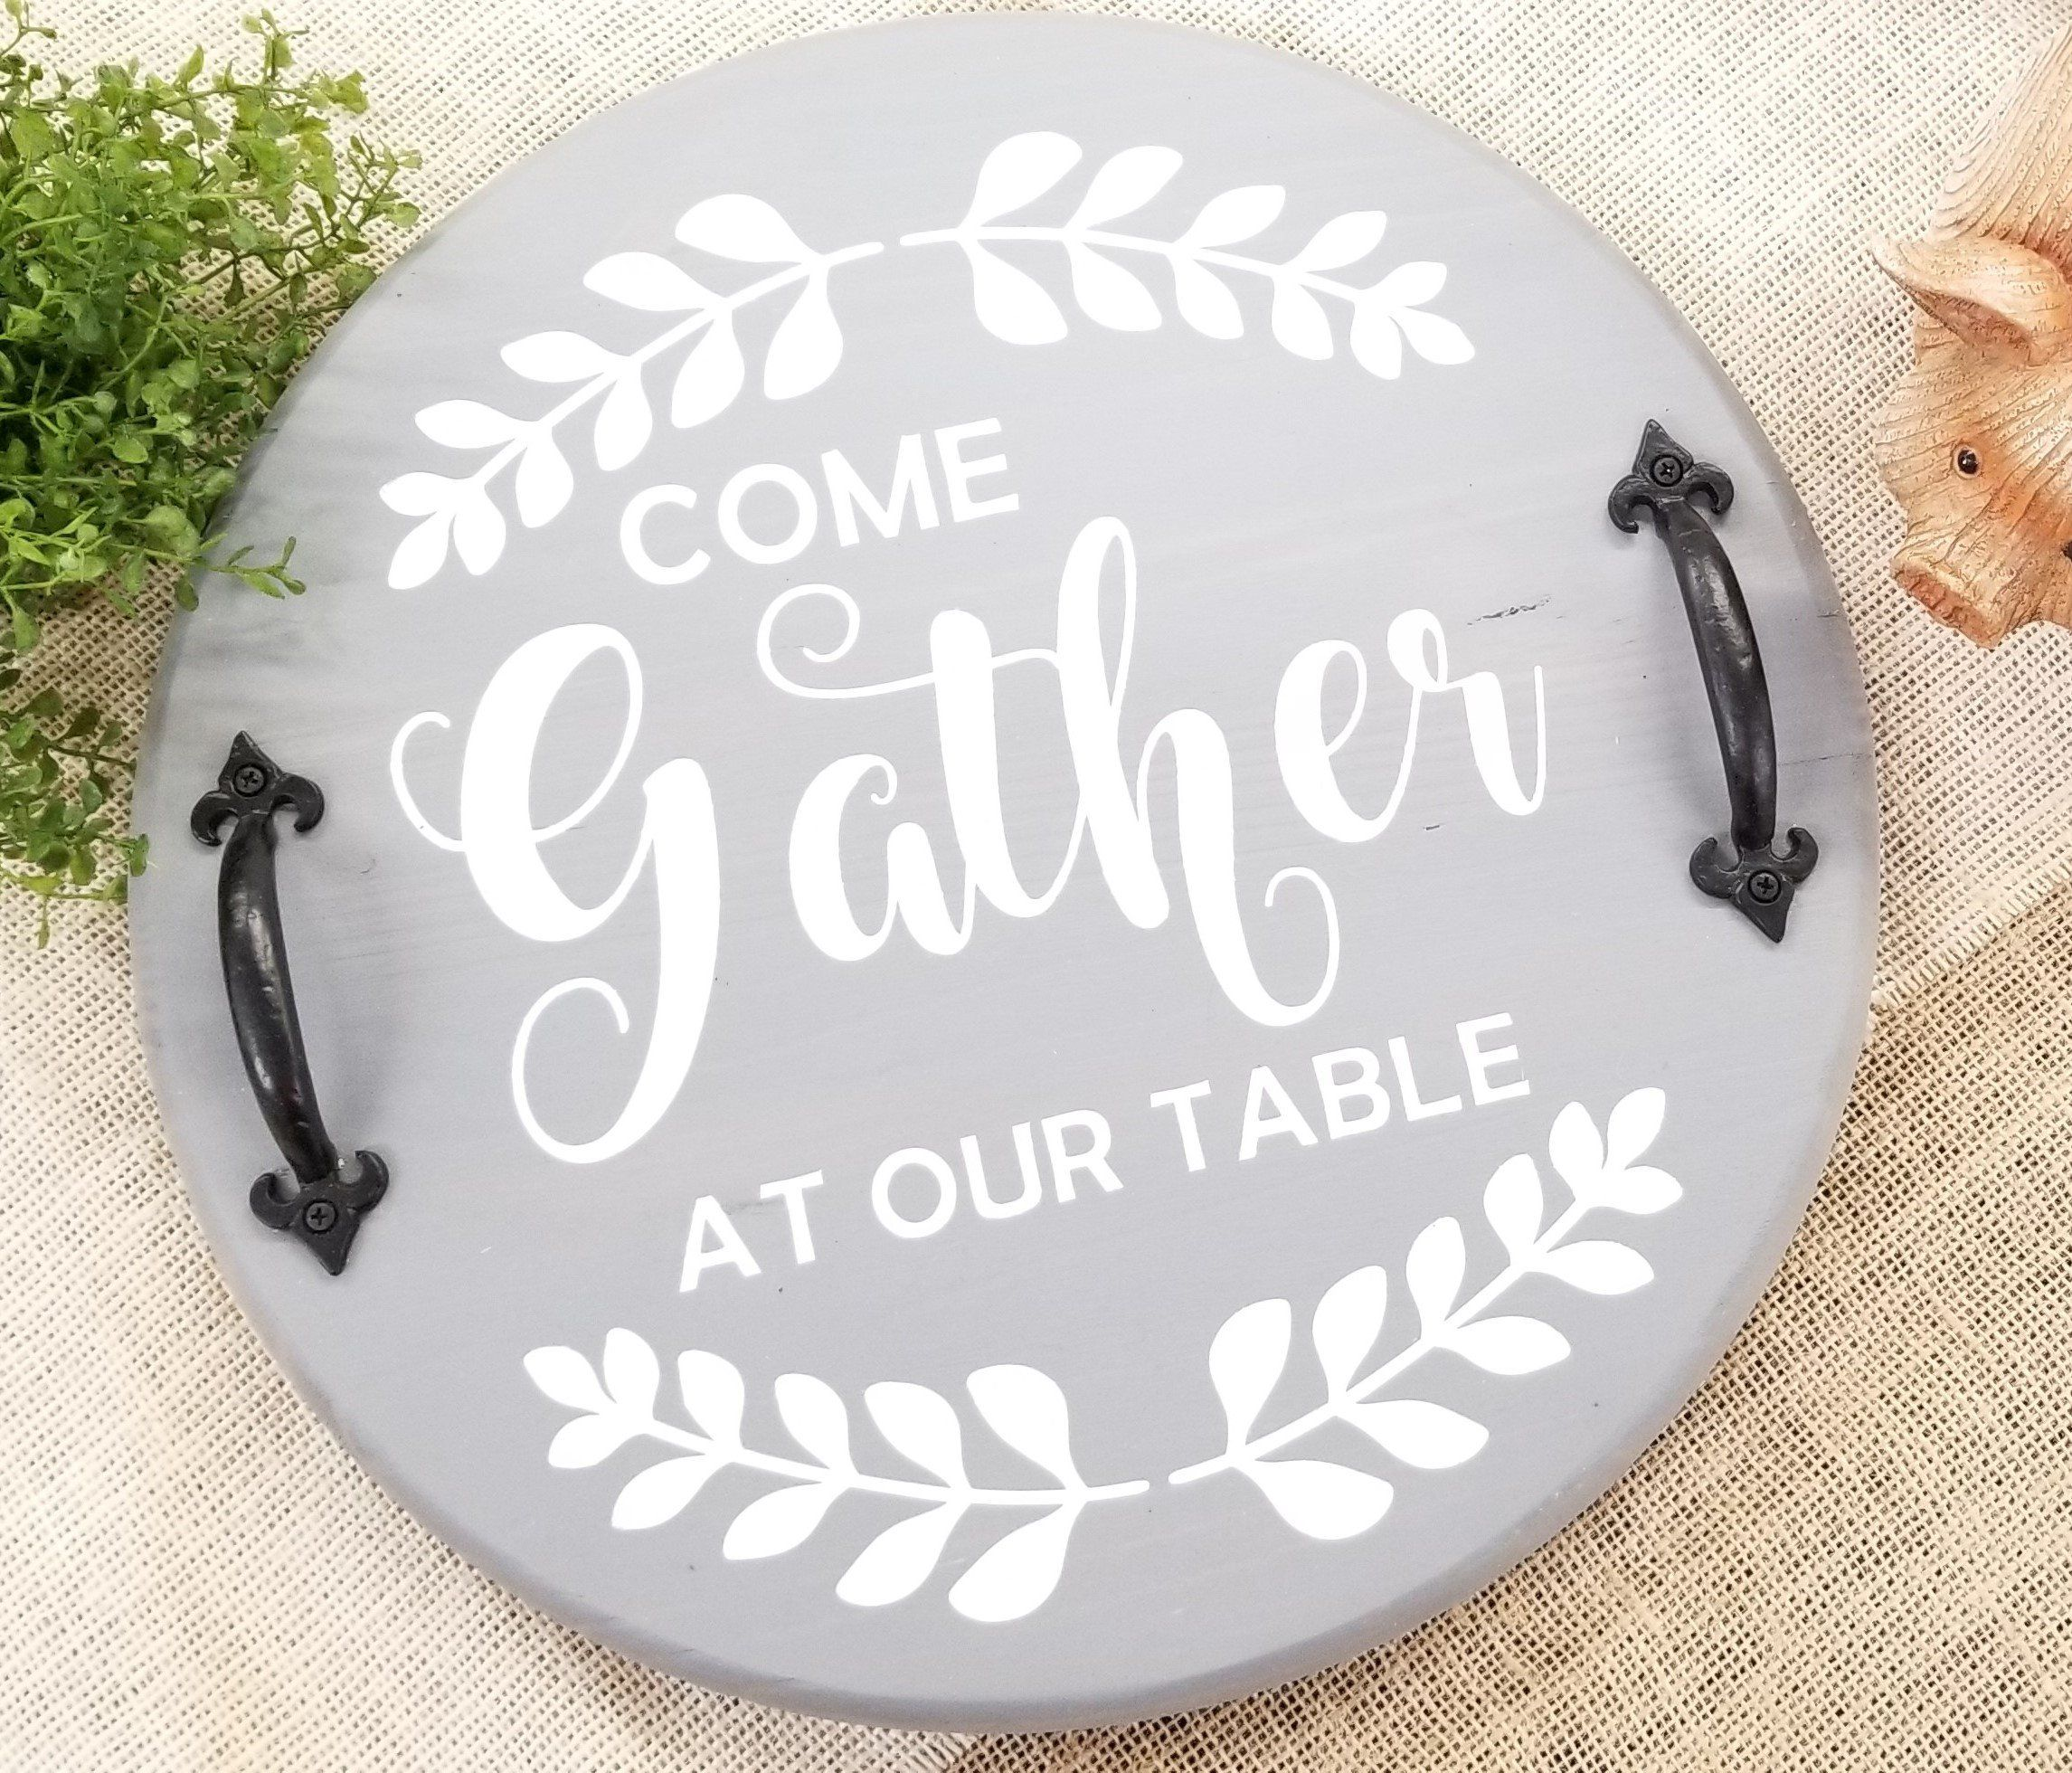 Rustic Farmhouse Round Wood Tray, 16, Hand-painted - 16 / White with Black Lettering